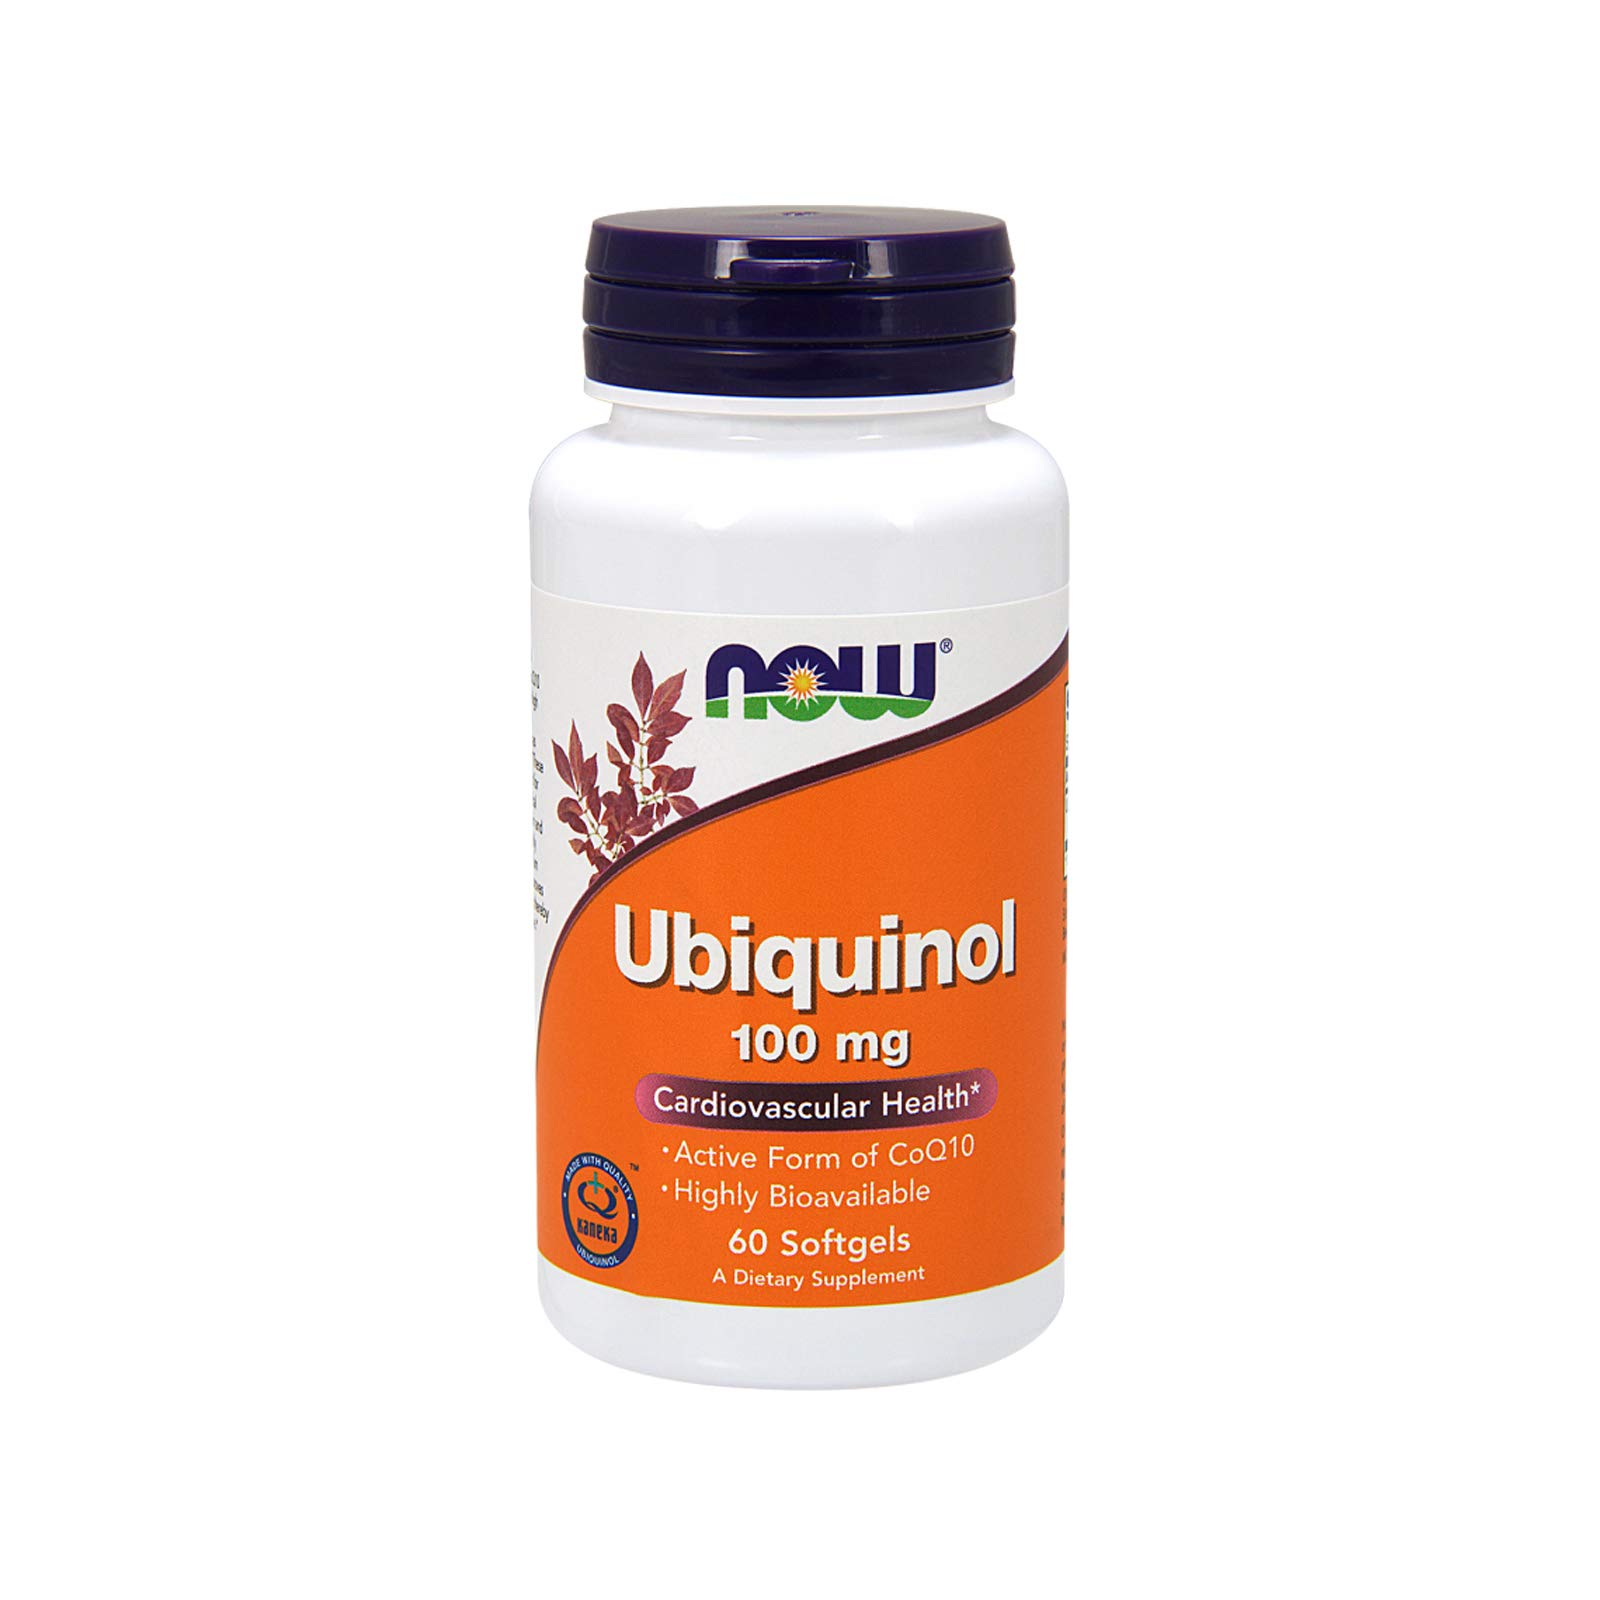 NOW Supplements, Ubiquinol 100 mg, High Bioavailability (The Active Form of CoQ10), 60 Softgels by NOW